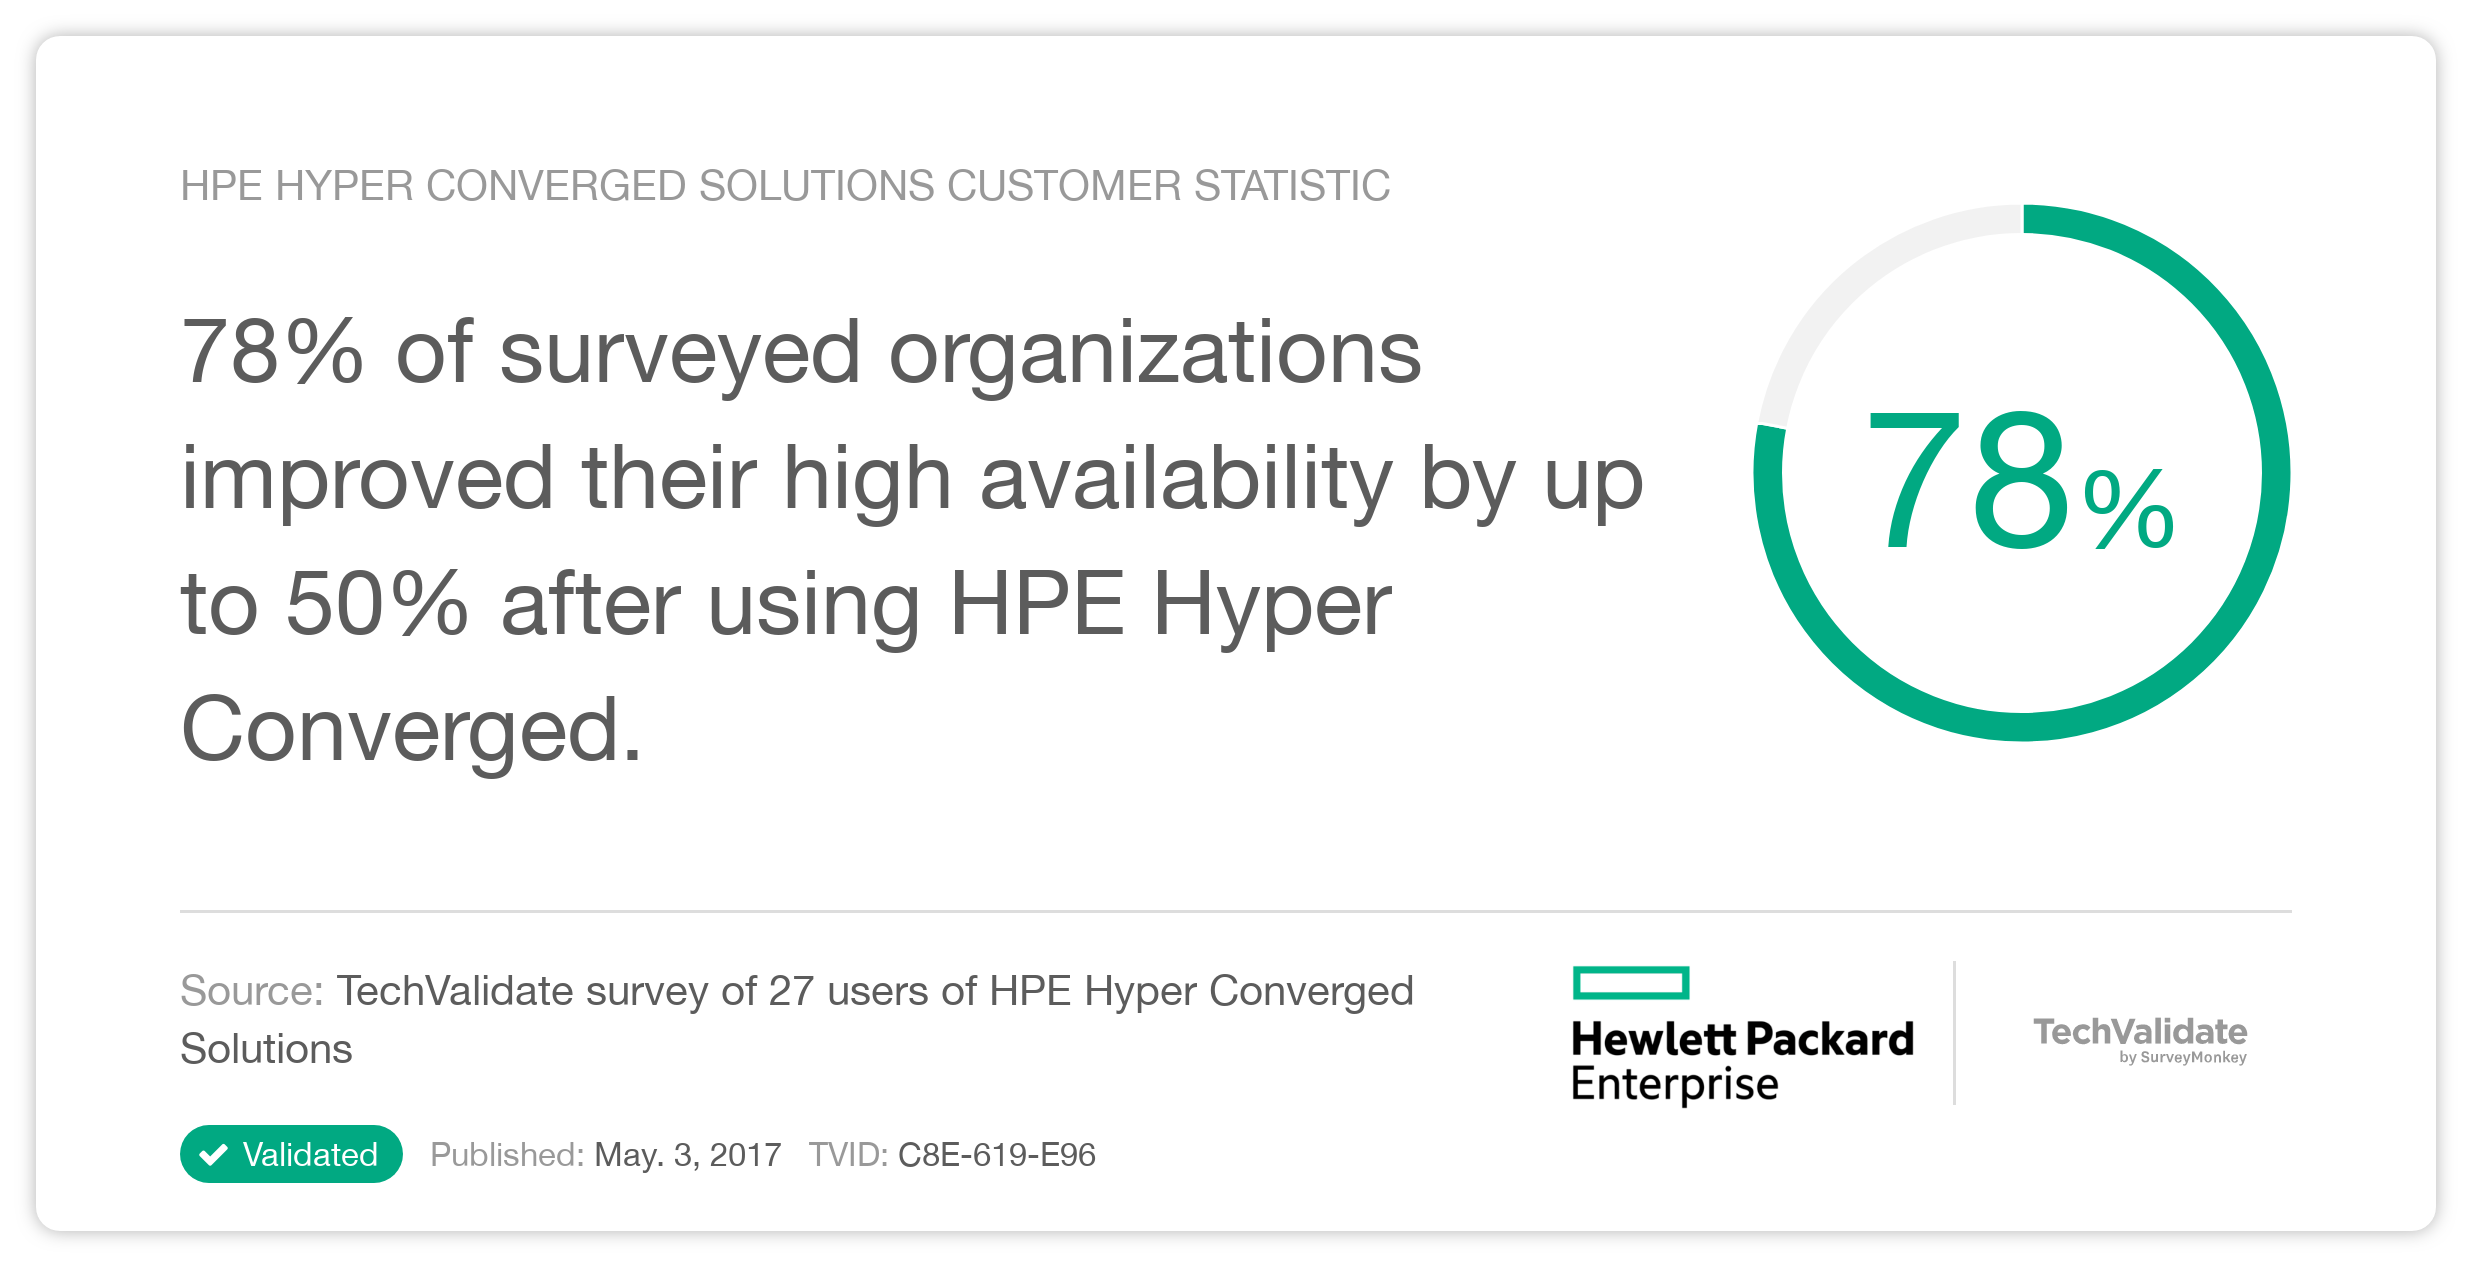 HPE Hyper Converged Solutions Customer Statistic